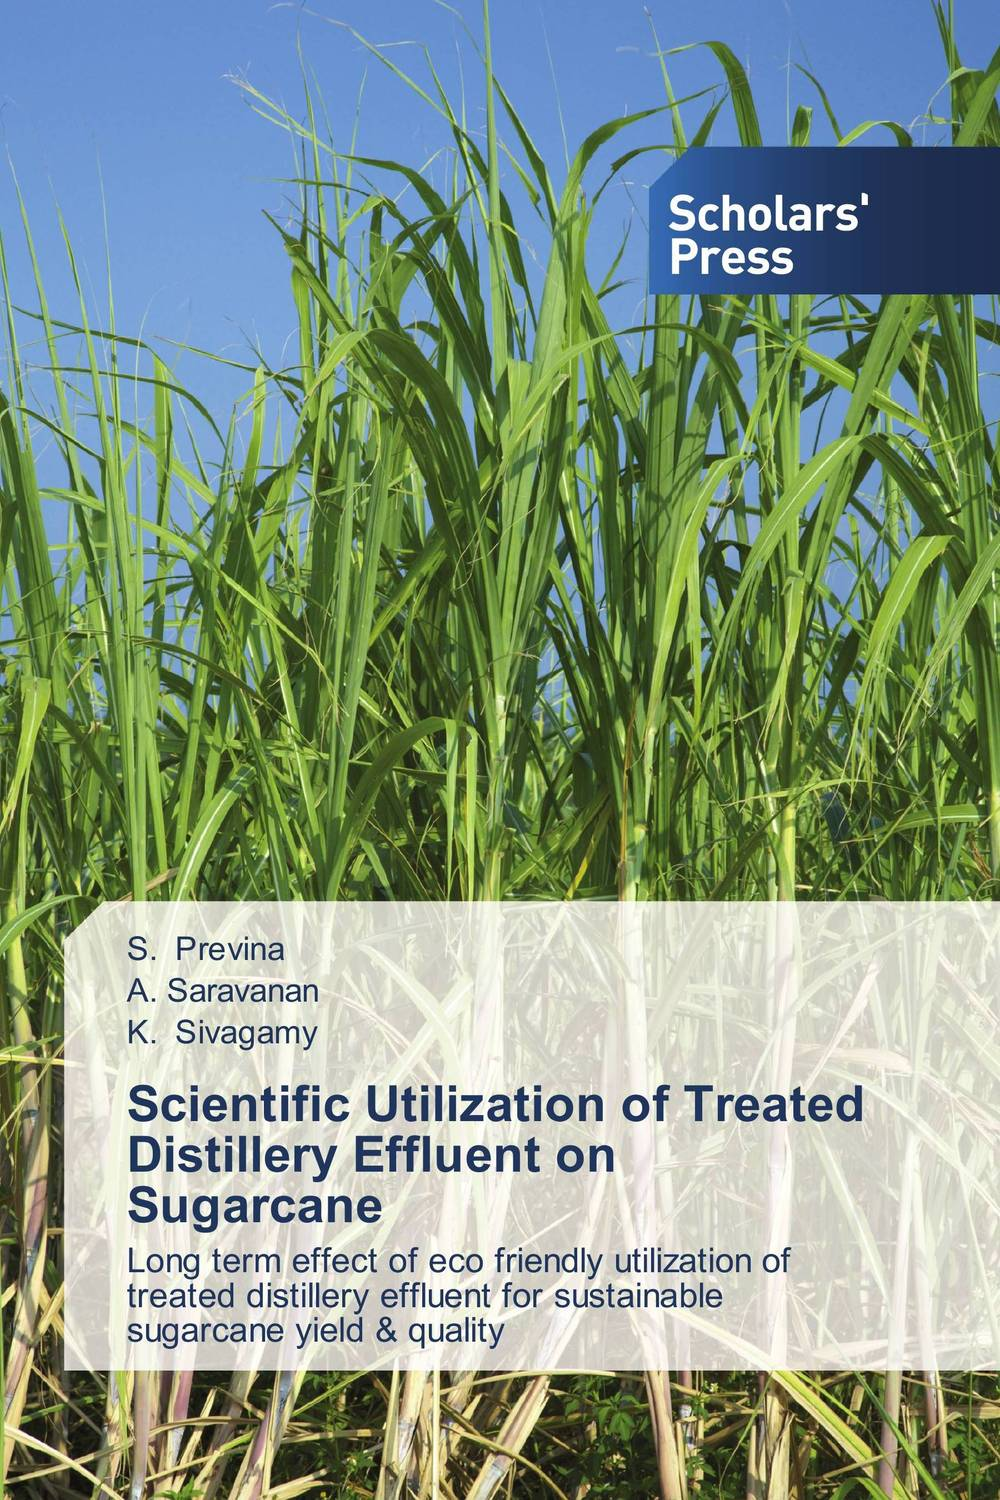 Scientific Utilization of Treated Distillery Effluent on Sugarcane 2017 new magnetic stirrer with heating for industry agriculture health and medicine scientific research and college labs